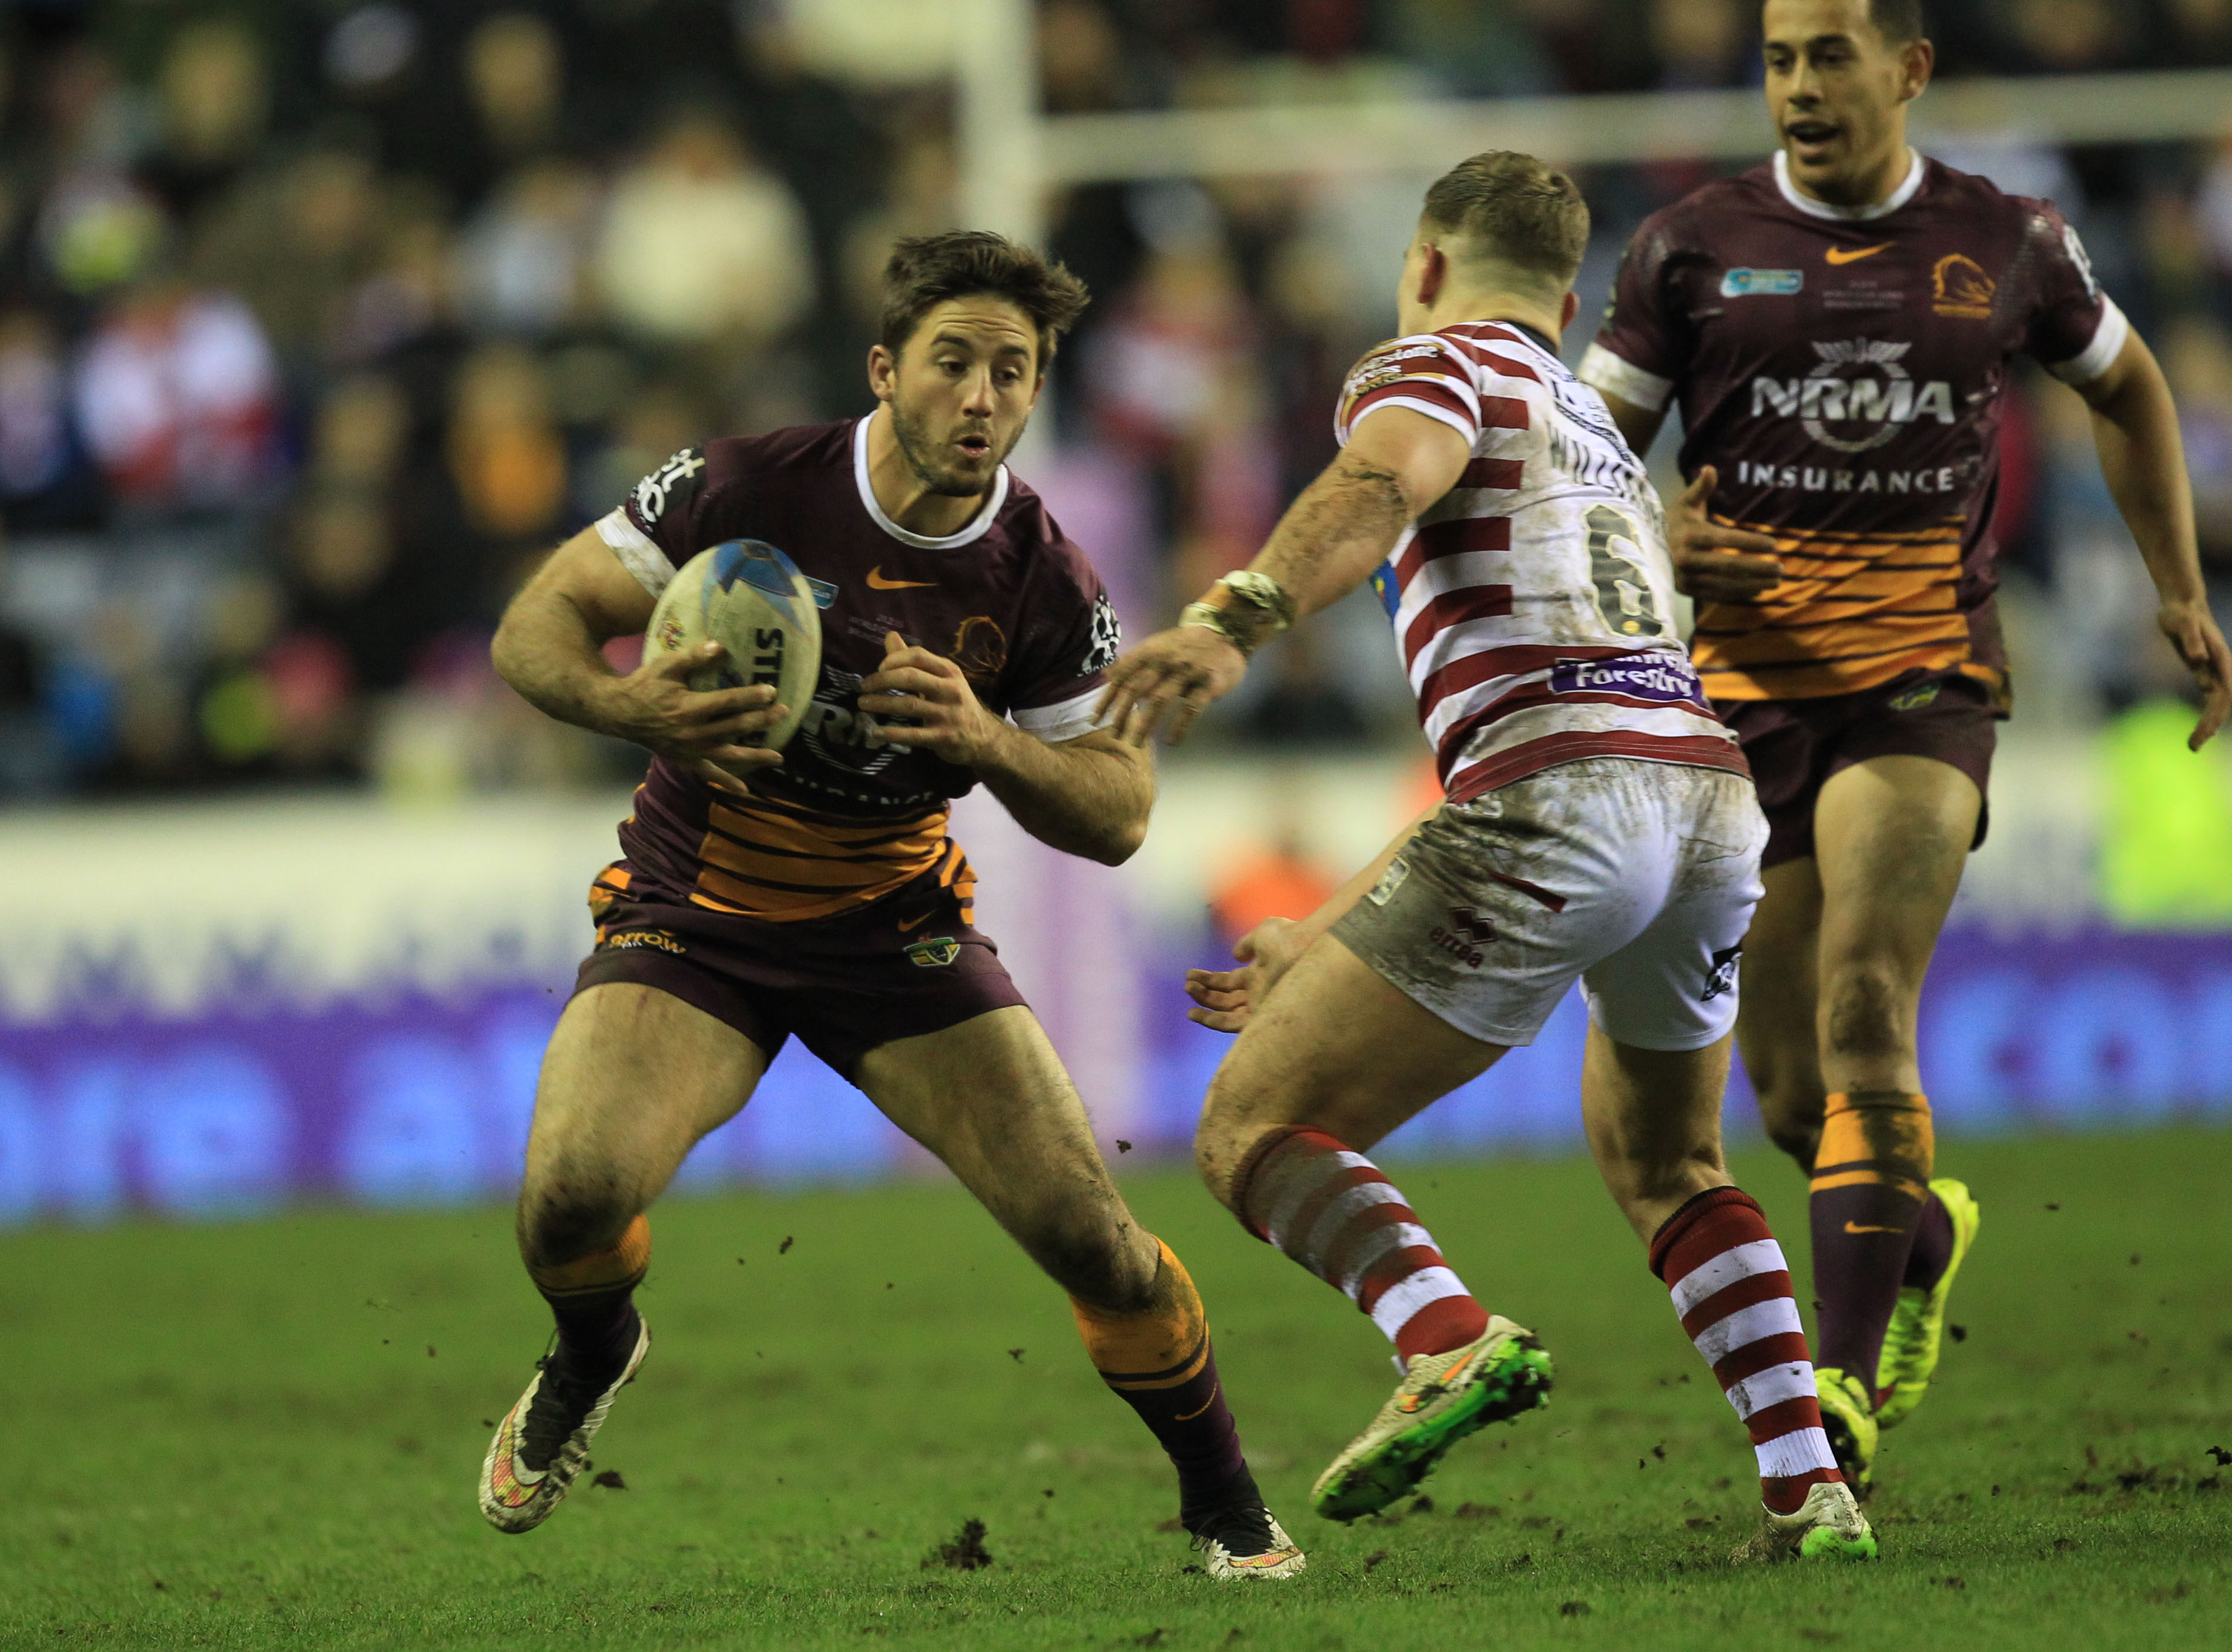 Teams confirmed for 2016 World Club Series